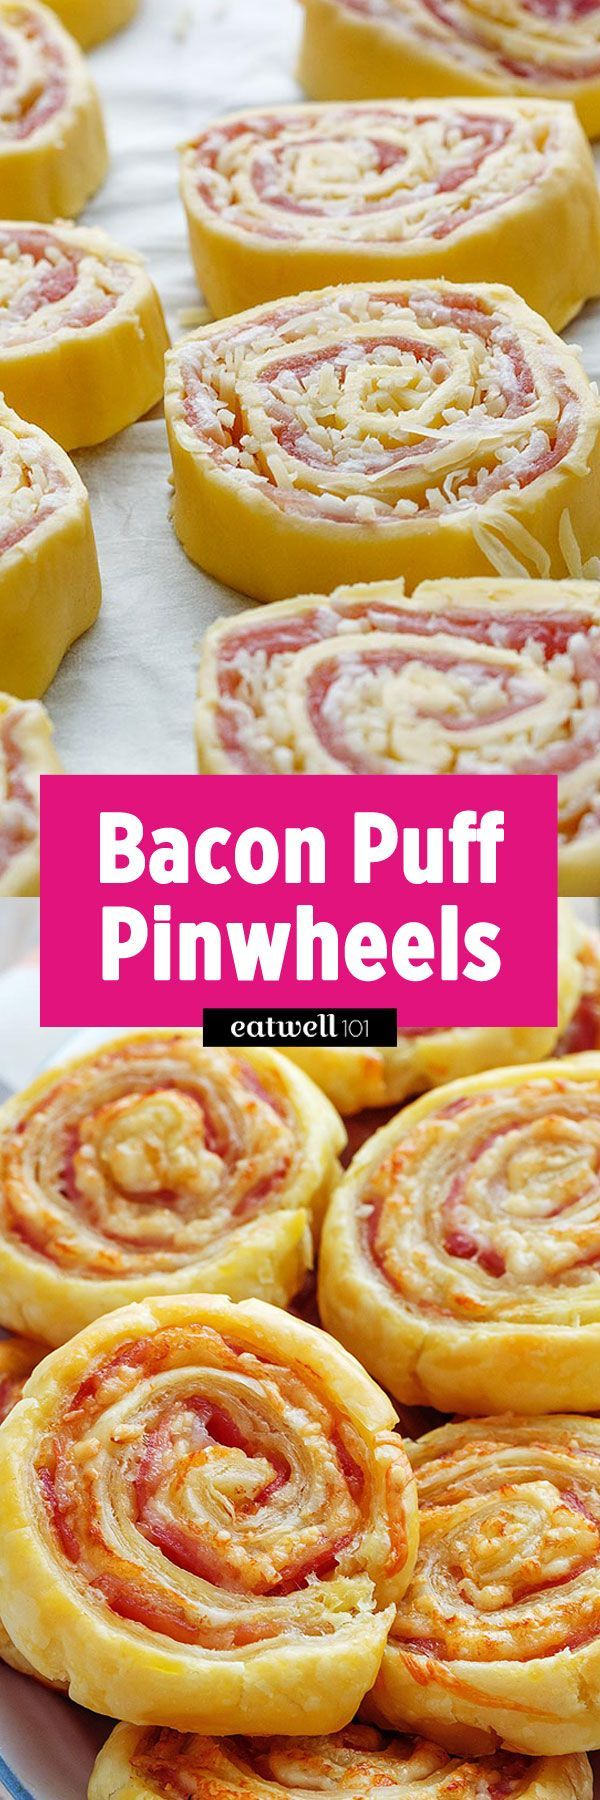 These elegant, and golden bacon and cheddar pinwheels are sure to be a hit at your next party. Warm, soft and just all around delicious, they are maybe one of the easiest appetizers you can whip up…